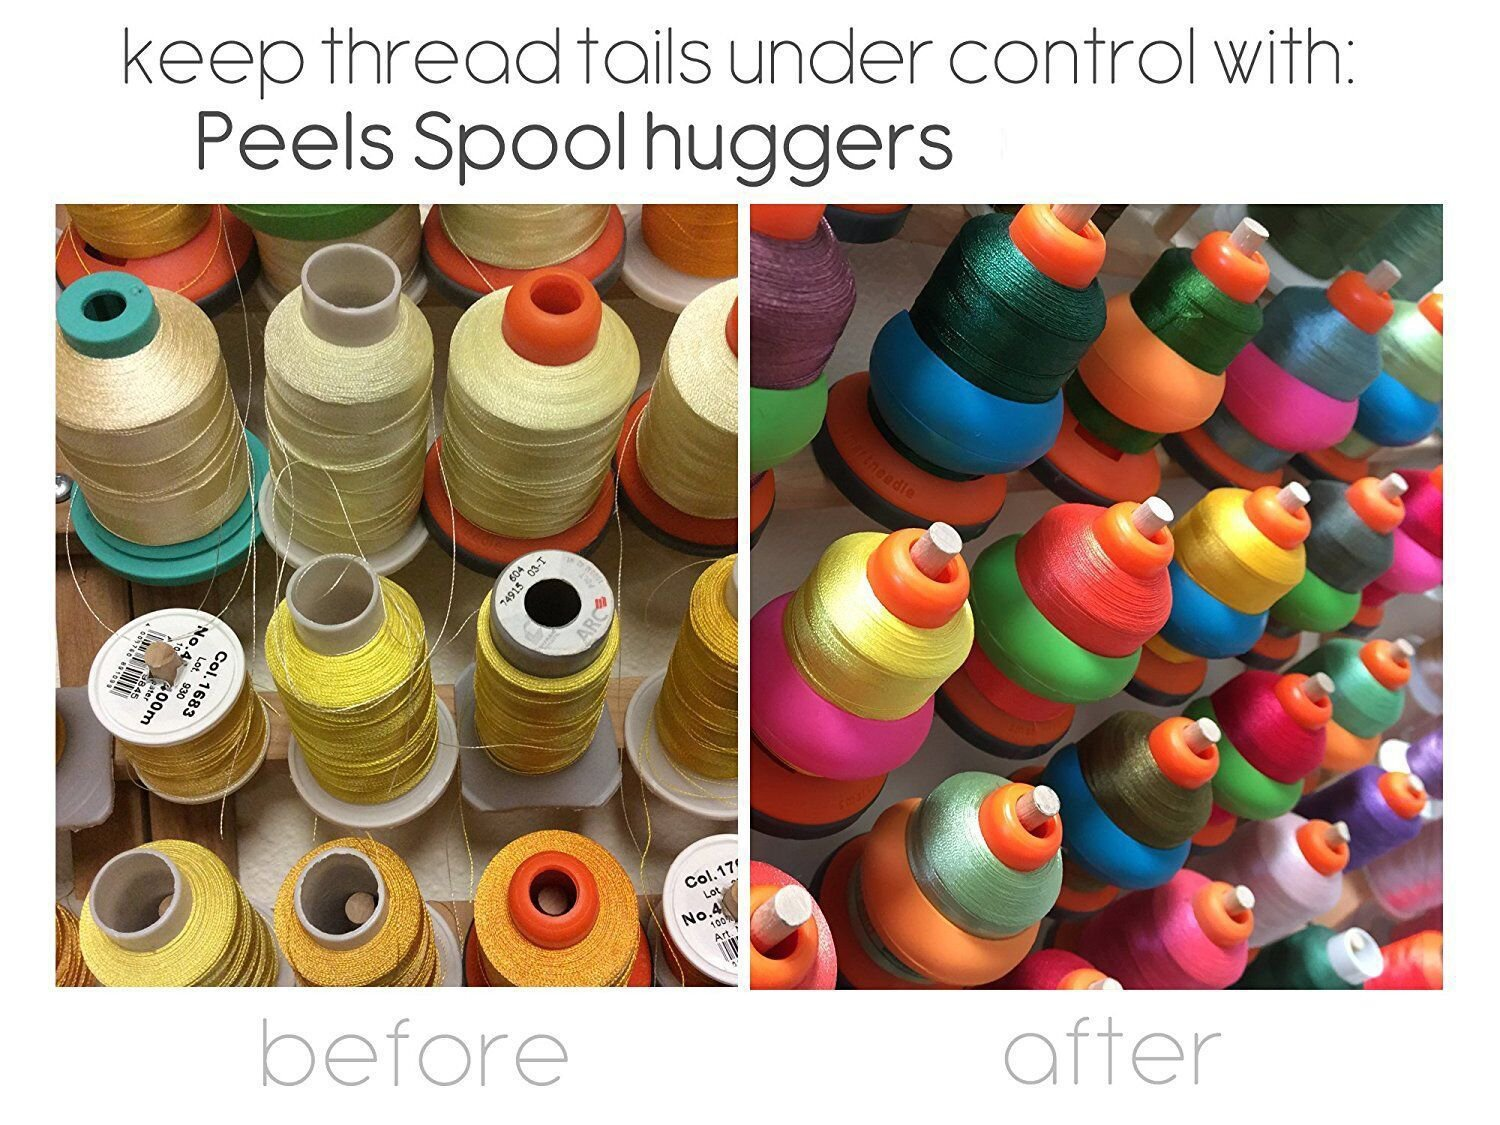 New Brothread 20pcs Thread Spool Huggers Prevent Thread Tails from Unwinding No Loose Ends for Sewing and Embroidery Machine Thread Spools